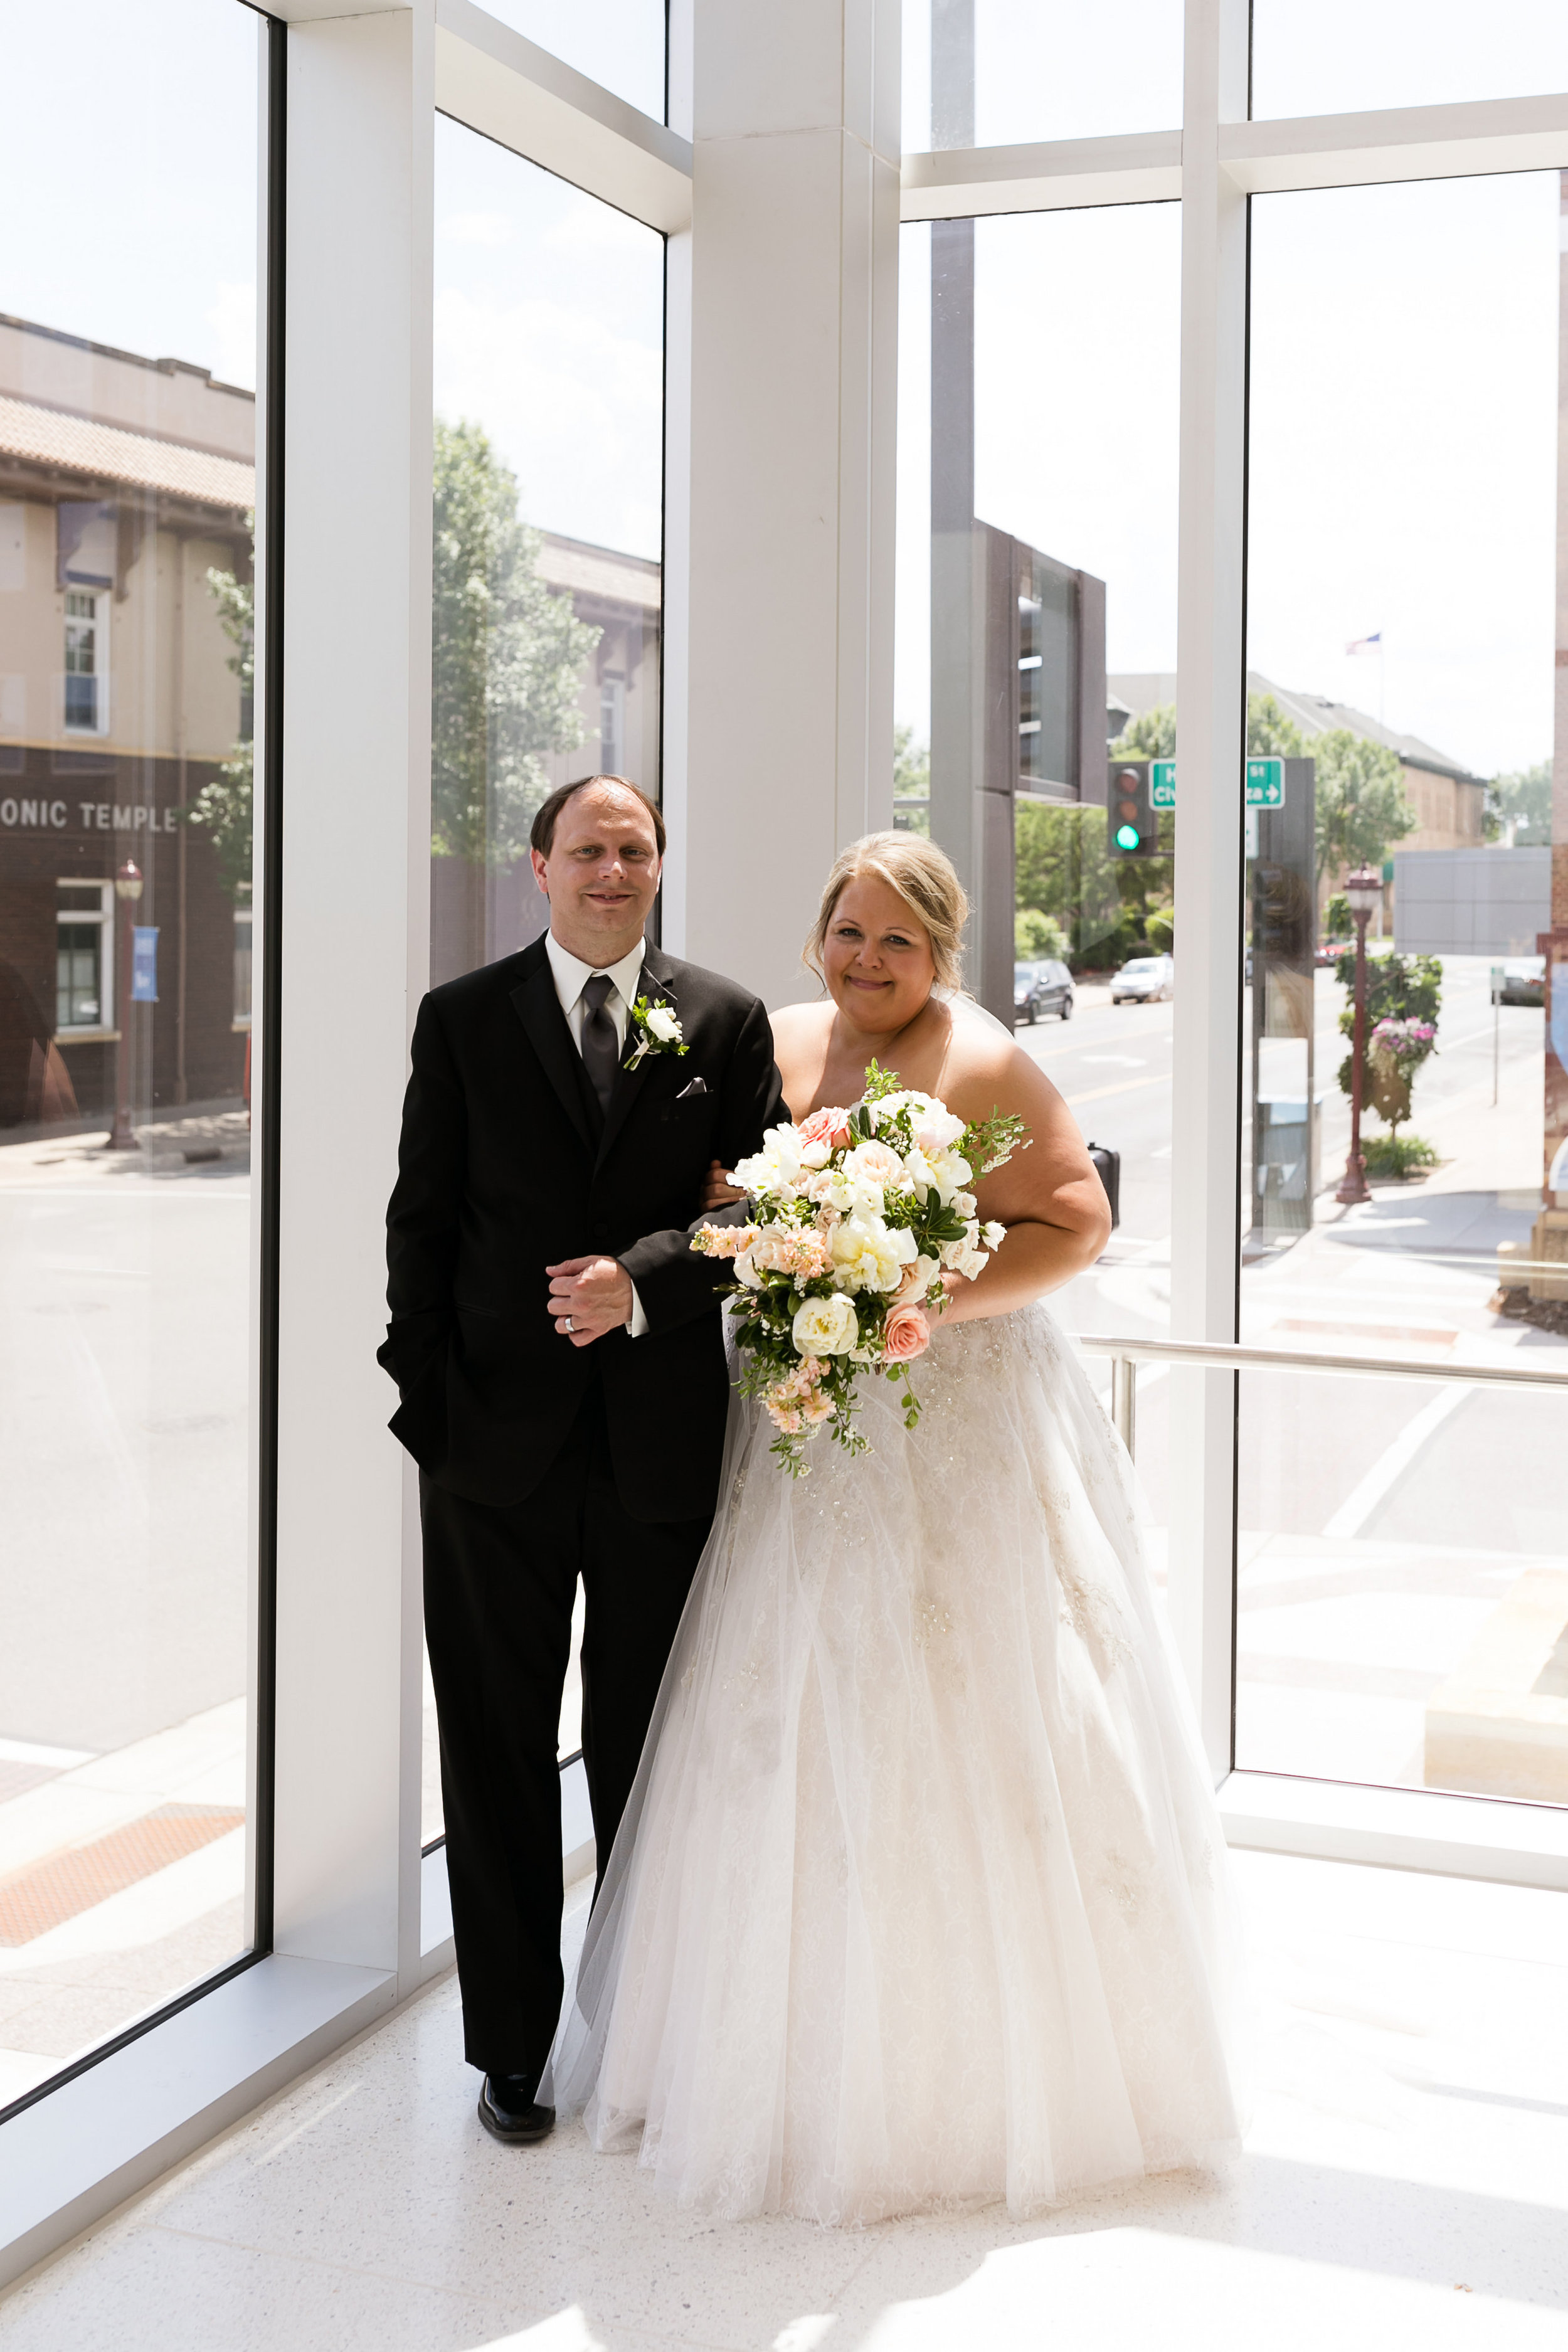 Bride and groom first look | Verizon Wireless Center in Mankato | Luxe Bridal gown | princess ballgown | Alice HQ photography